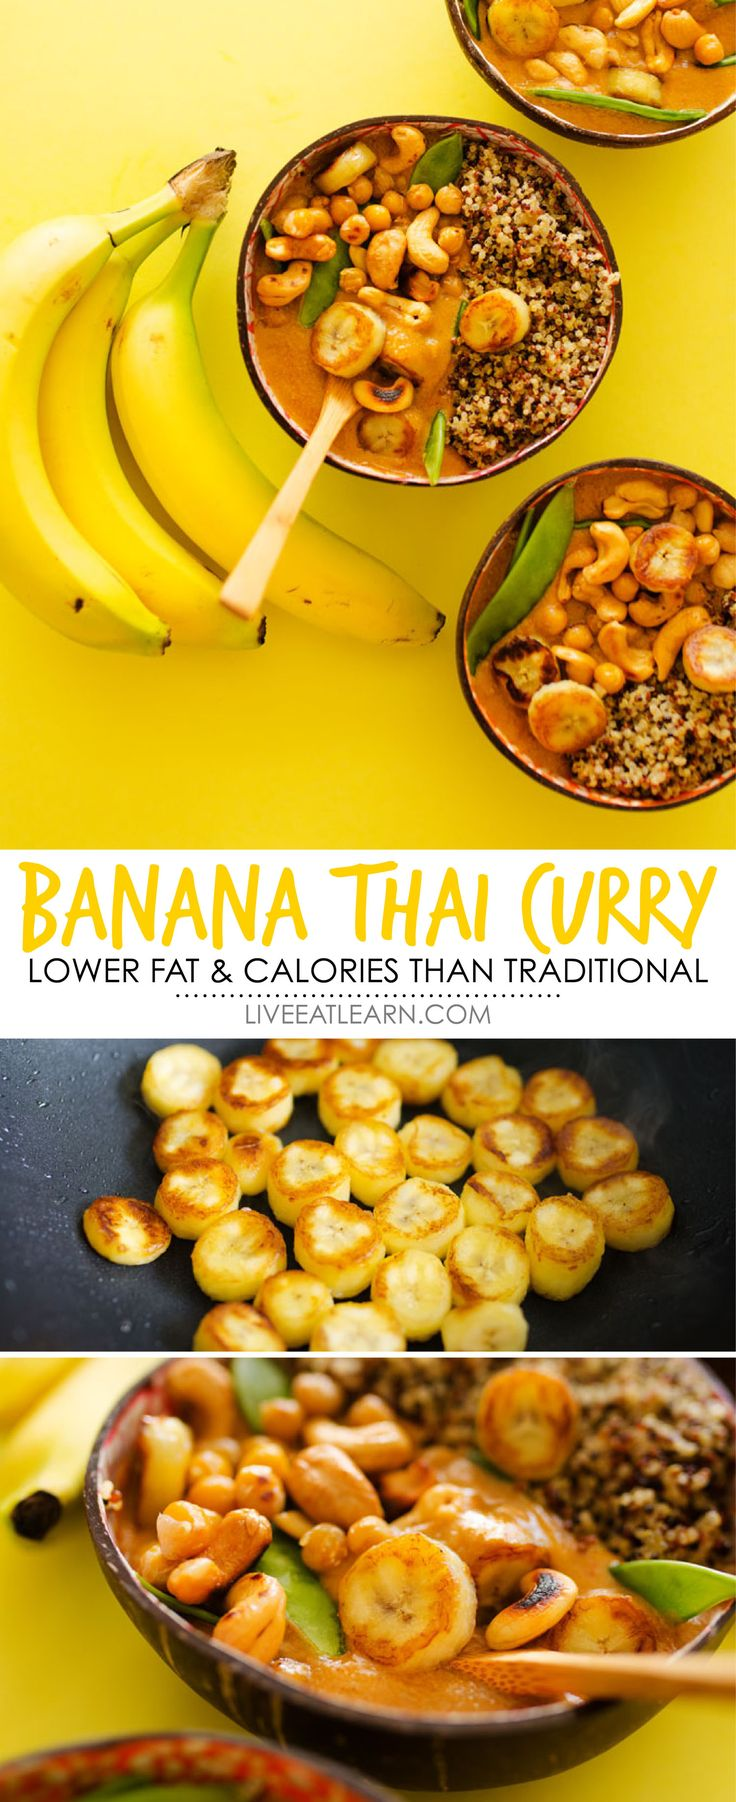 This Banana Thai Curry recipe, with mashed bananas, red curry paste, chickpeas, and cashews, is a simple, healthy vegan meal with less fat and calories than traditional Thai curry recipes. // Live Eat Learn